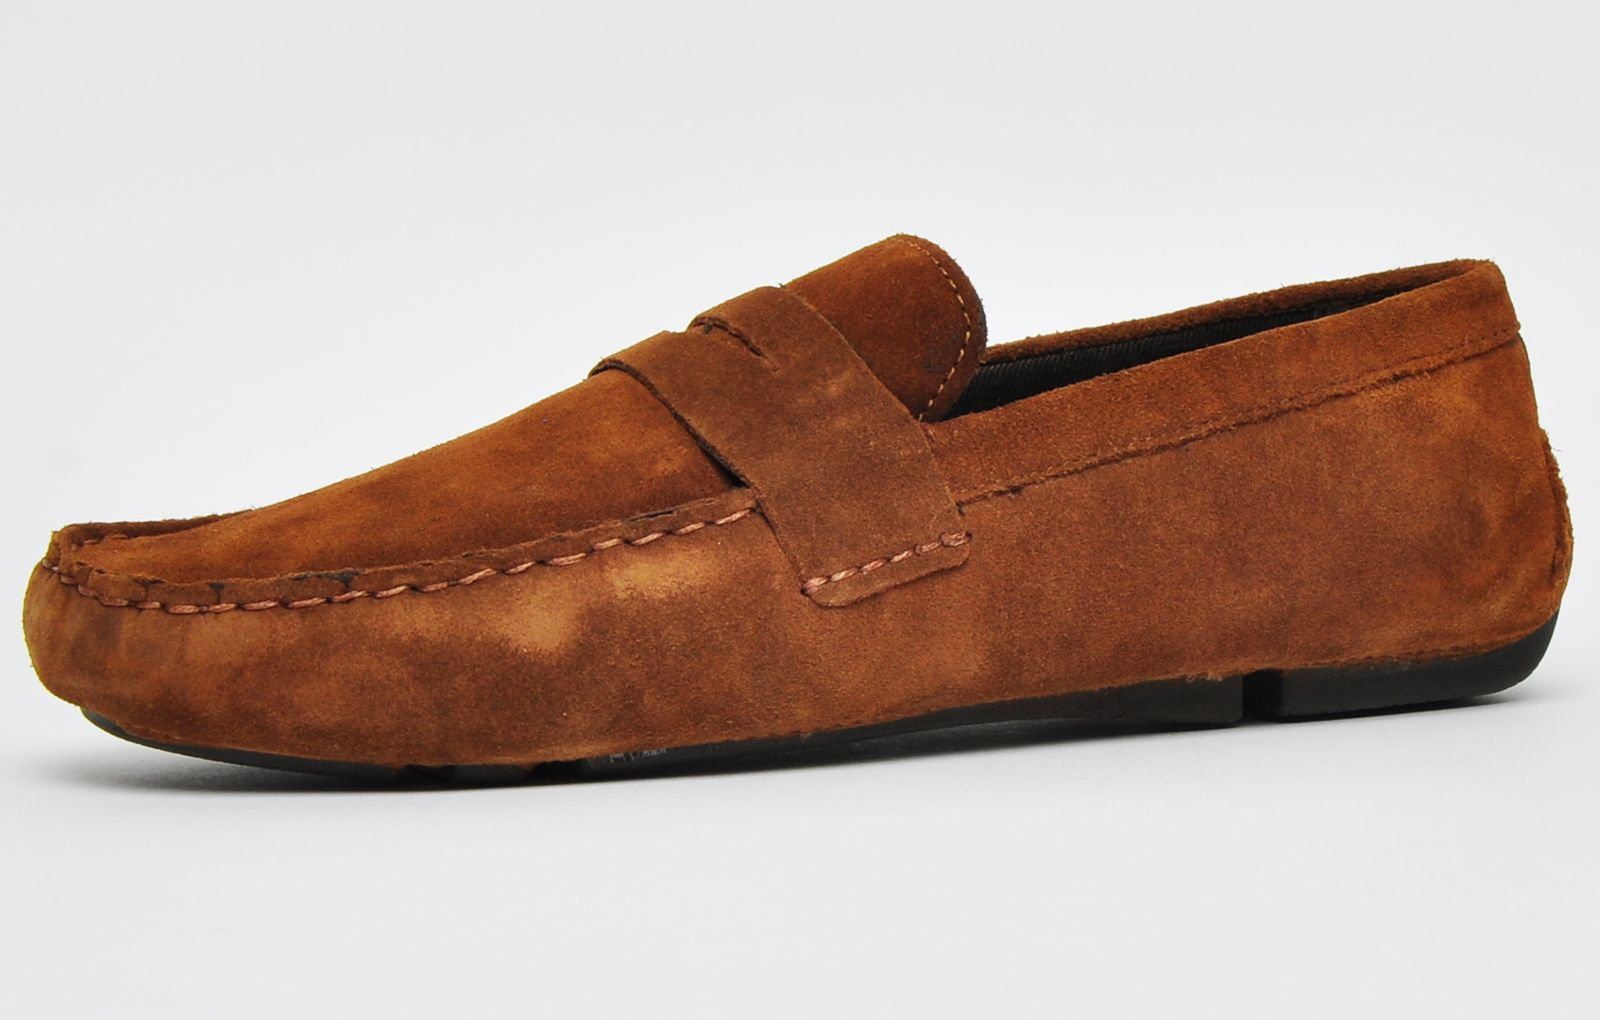 Red Tape Cranfield Suede Leather Mens